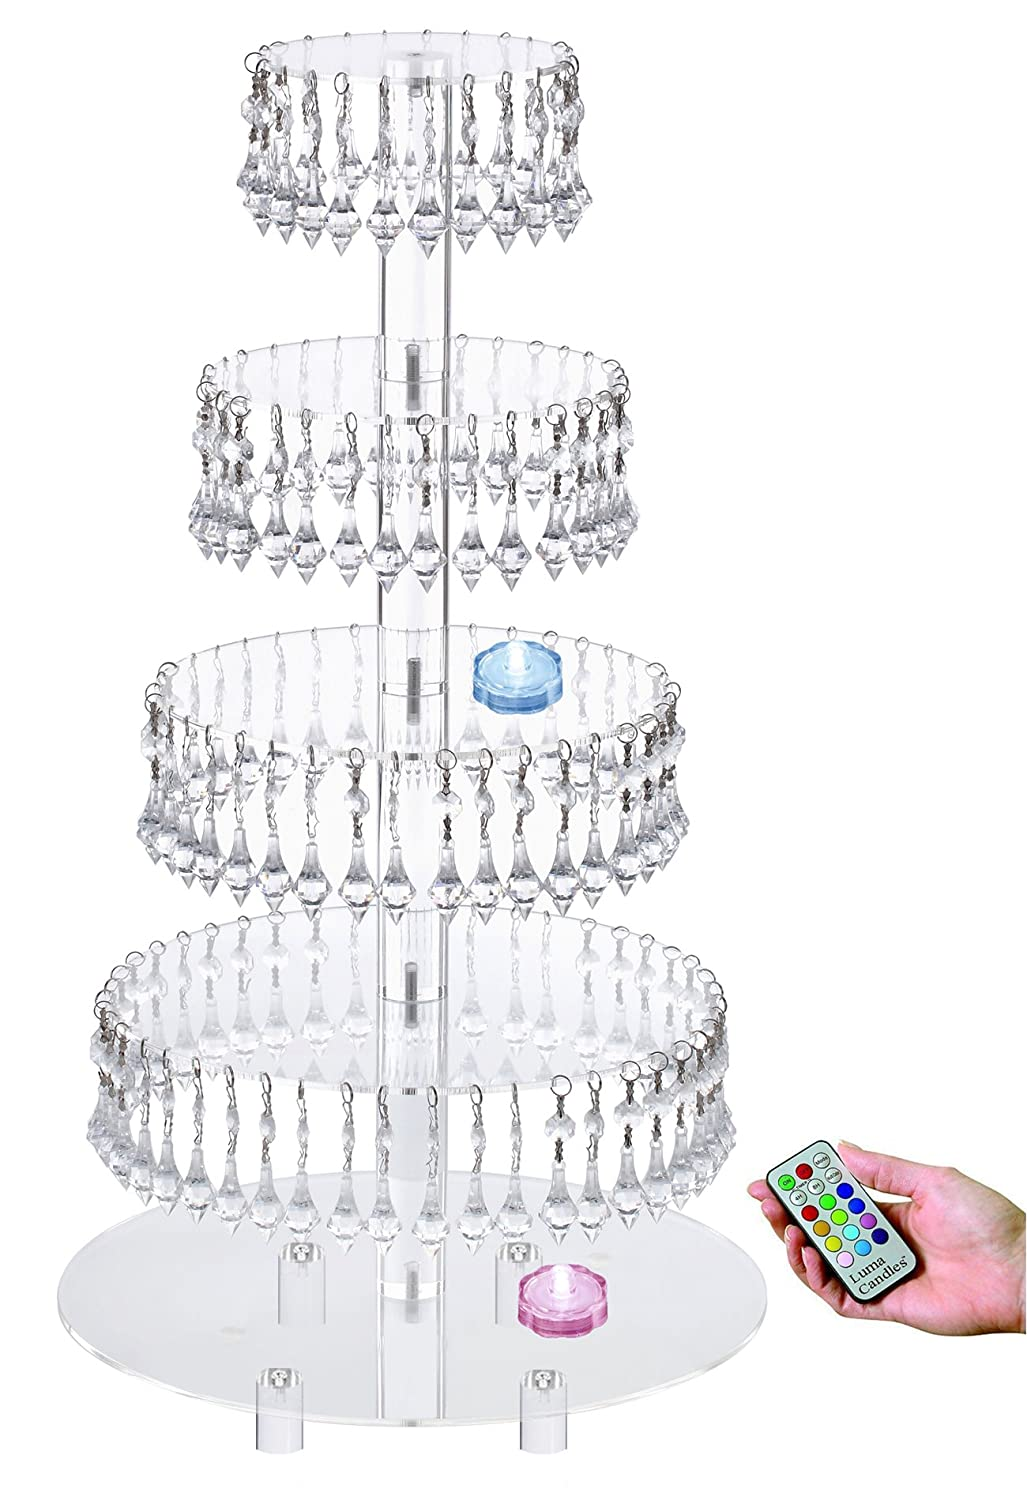 Pre-Installed Crystal Beads- 6 Tier Acrylic Cupcake Tower Stand with Hanging Crystal Bead-wedding Party Cake Tower (6 Tier With Feet)